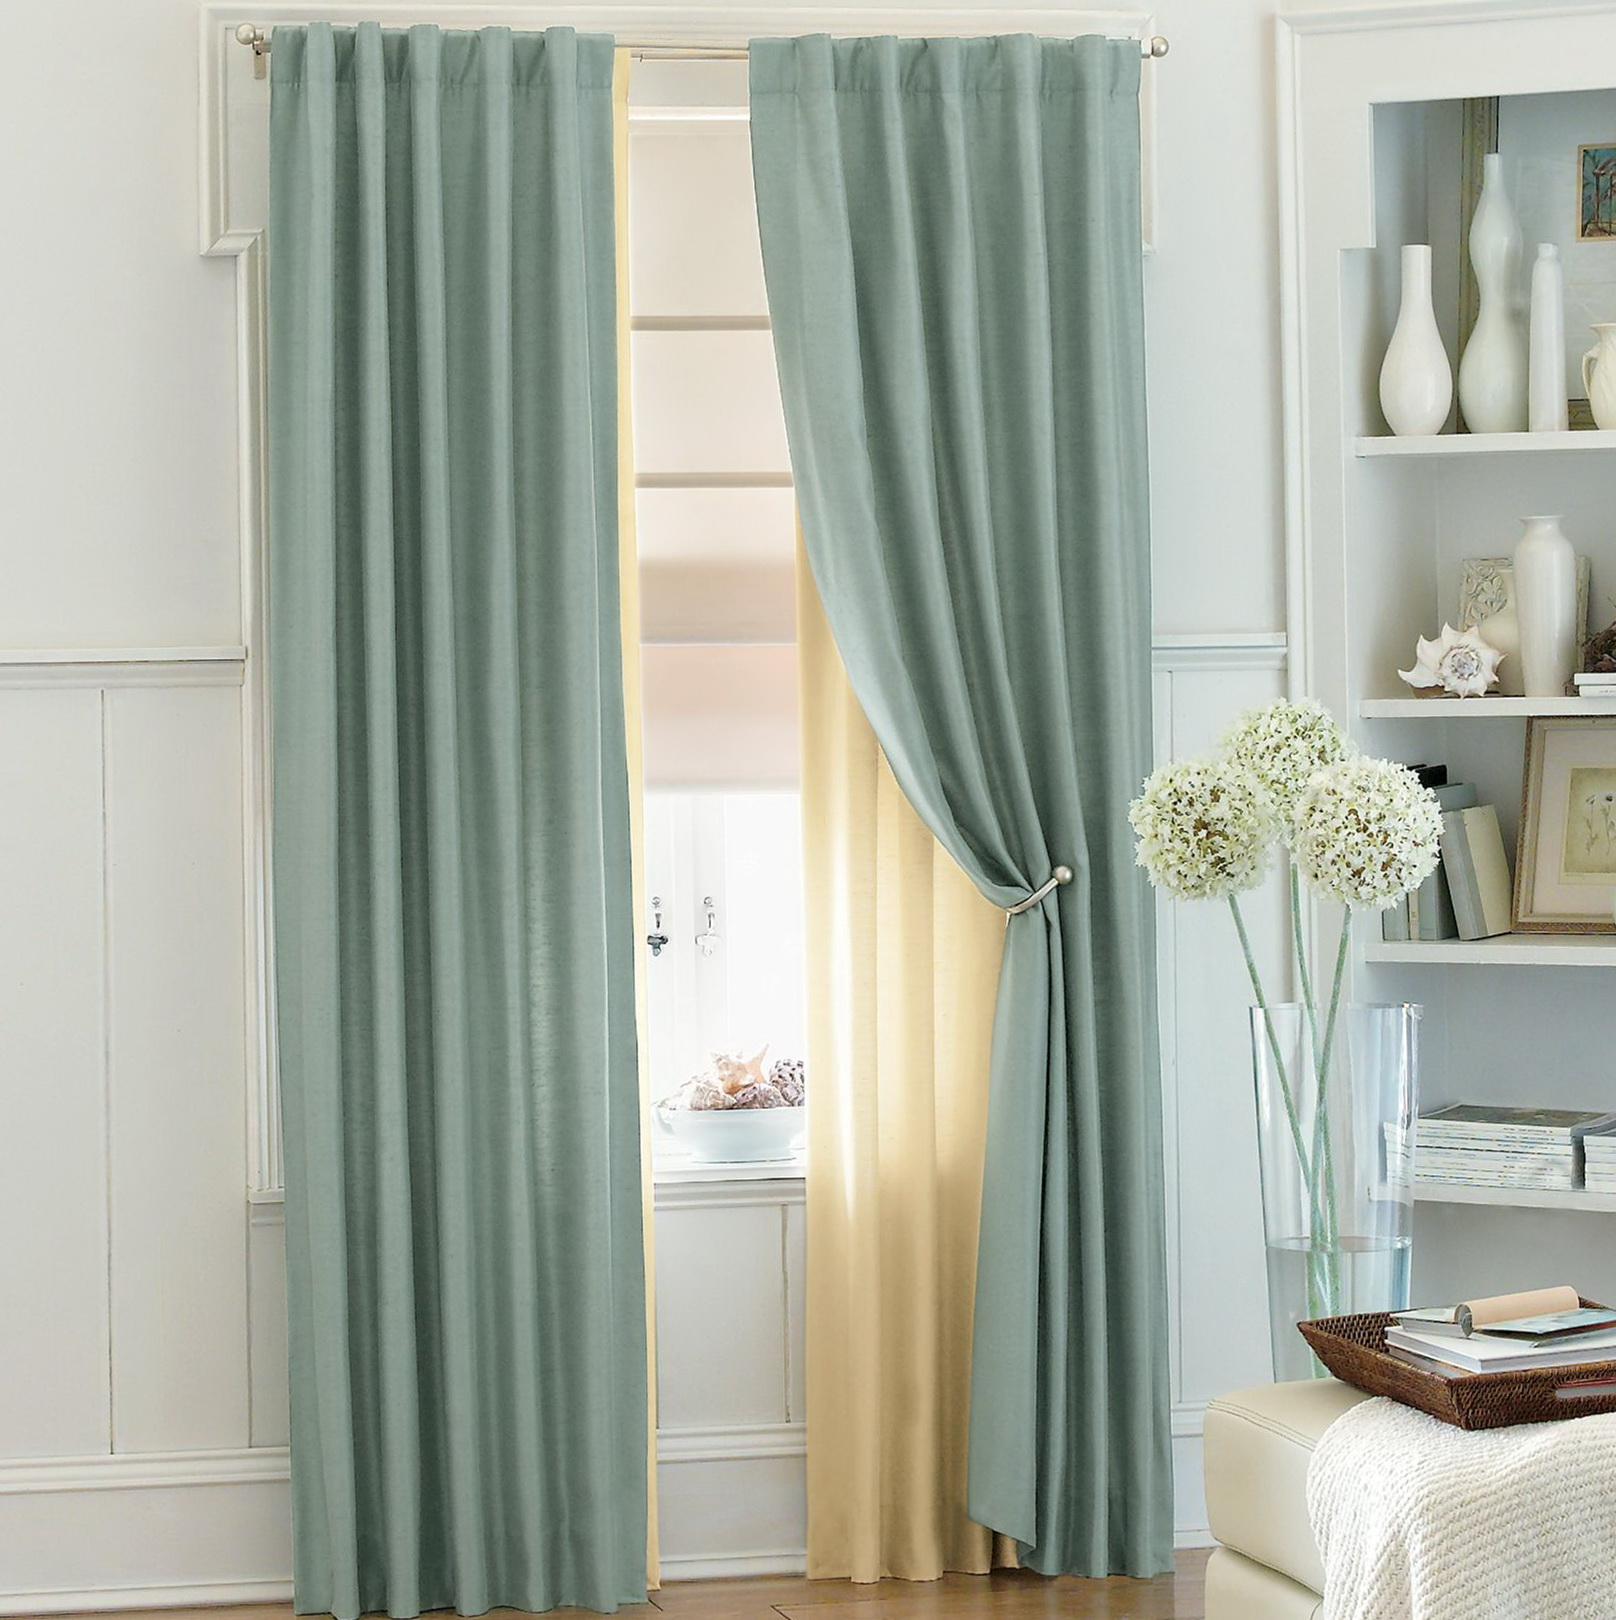 Home Design Ideas Curtains: Double Window Curtain Ideas